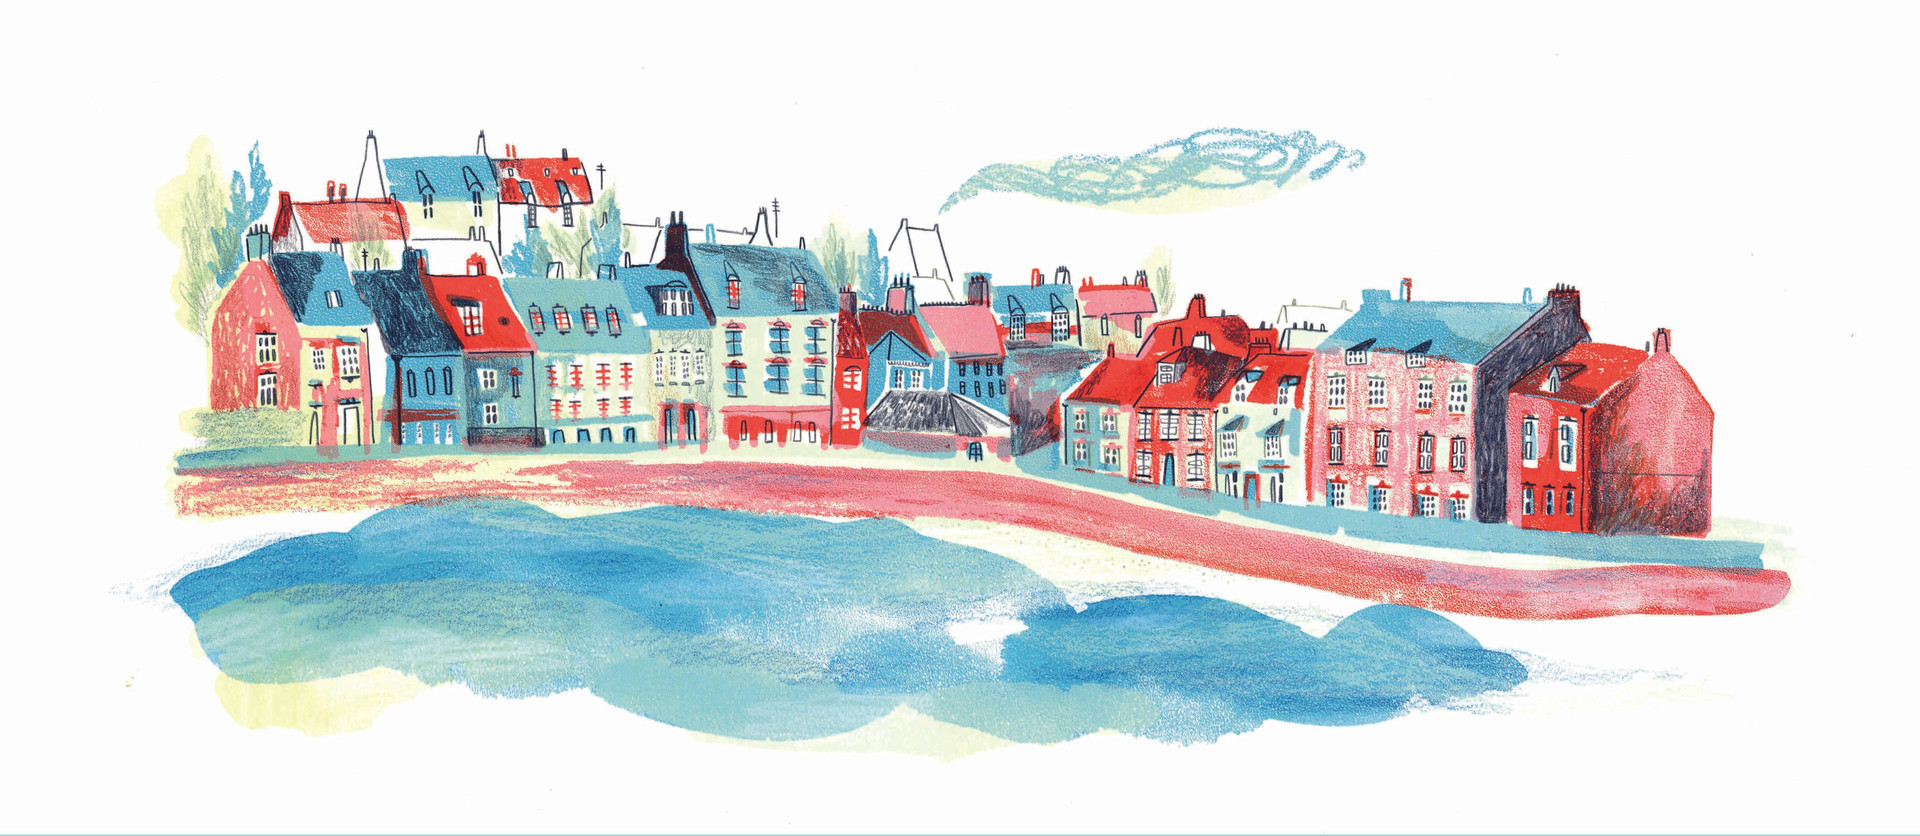 'Anstruther'